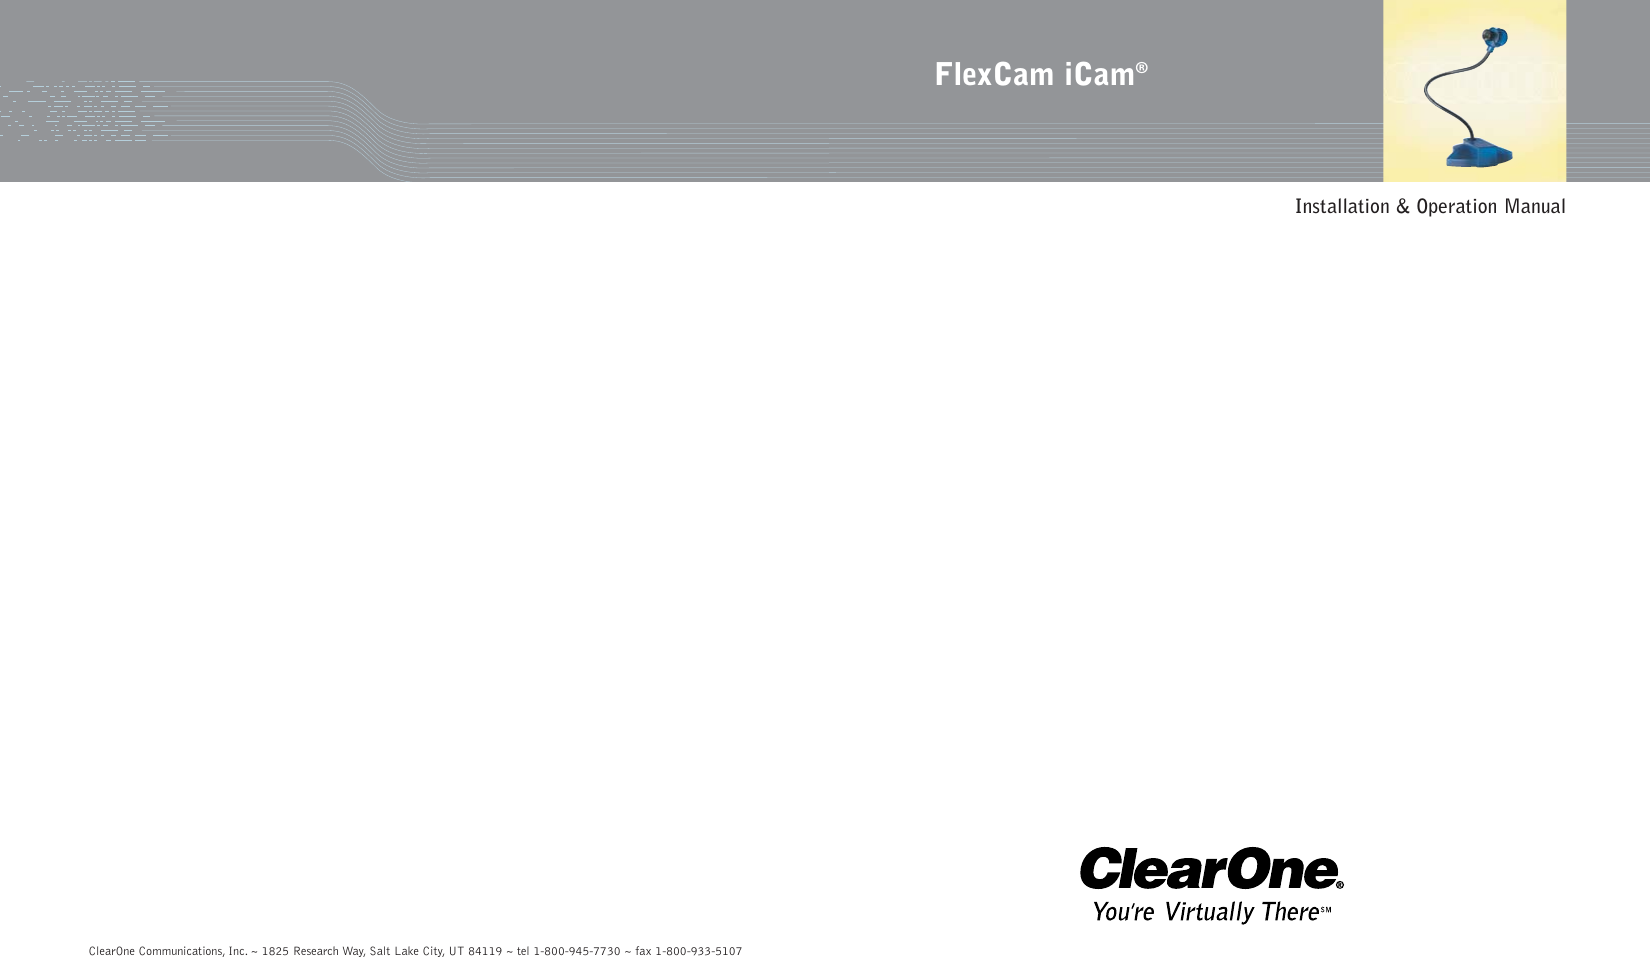 Clearone Camcorder 910 171 101 Pal Users Manual FlexCam_iCam_man